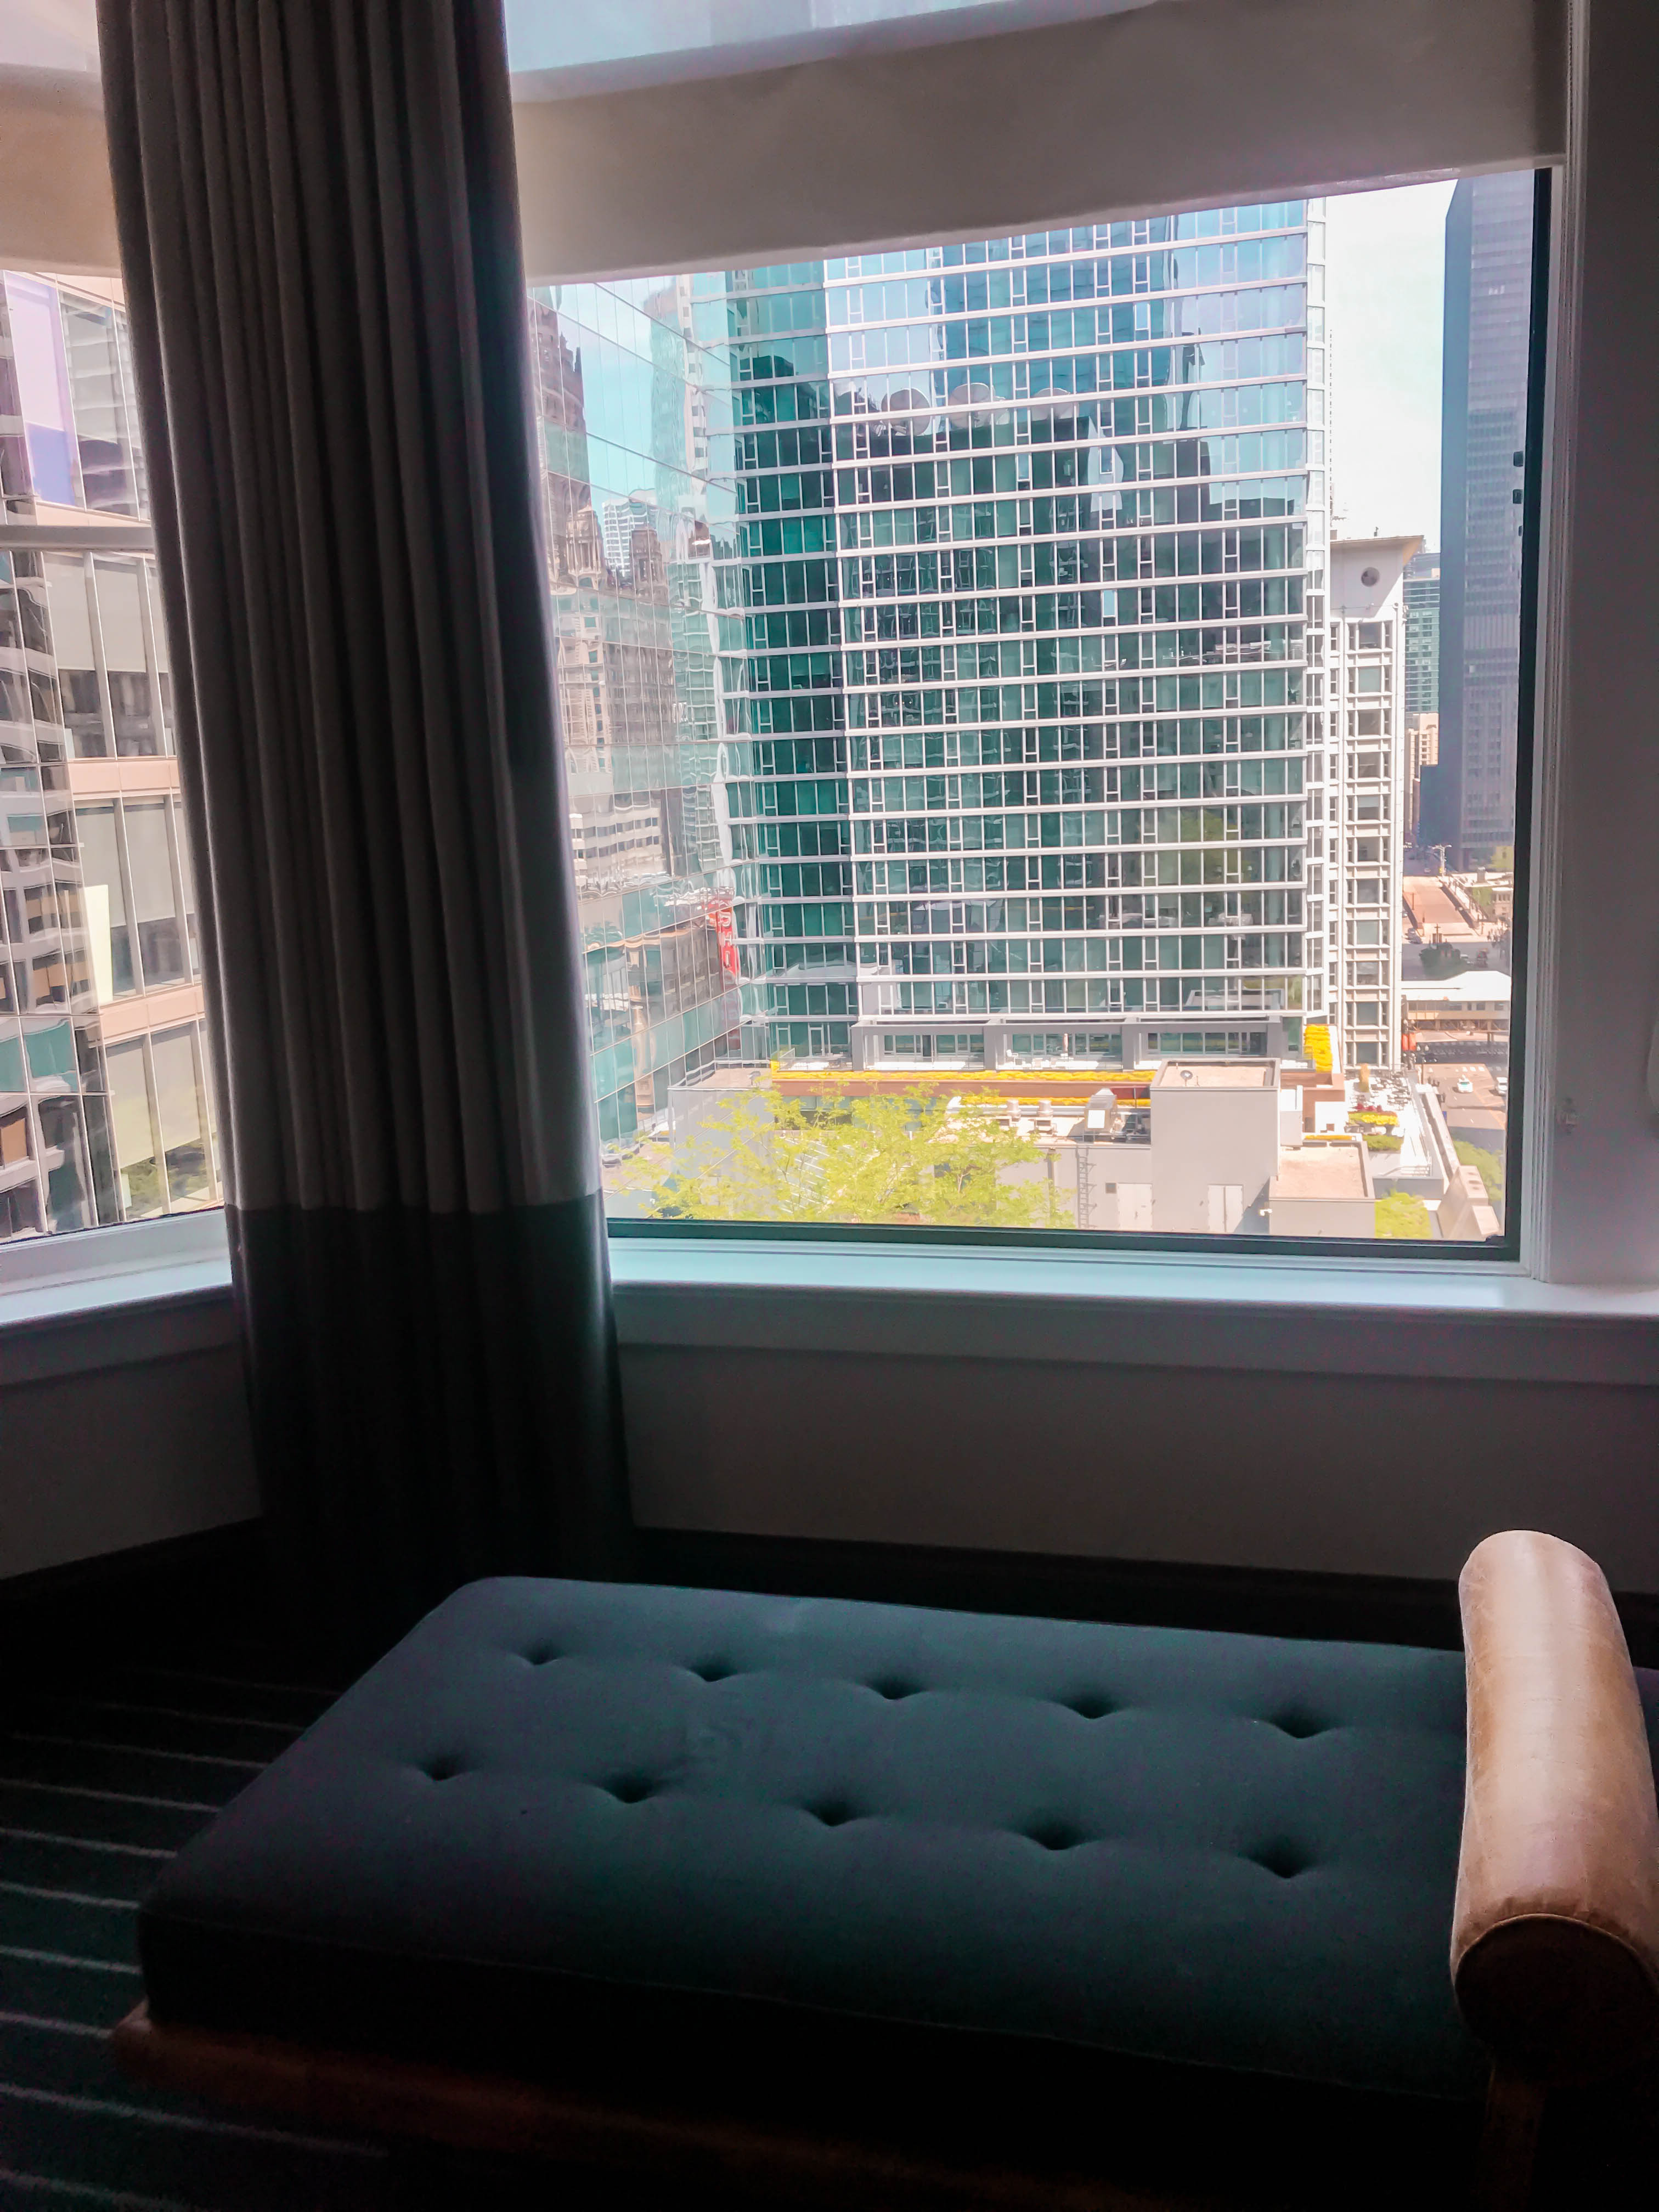 staypineapple an iconic hotel the loop chicago 14th floor queen room city view downtown